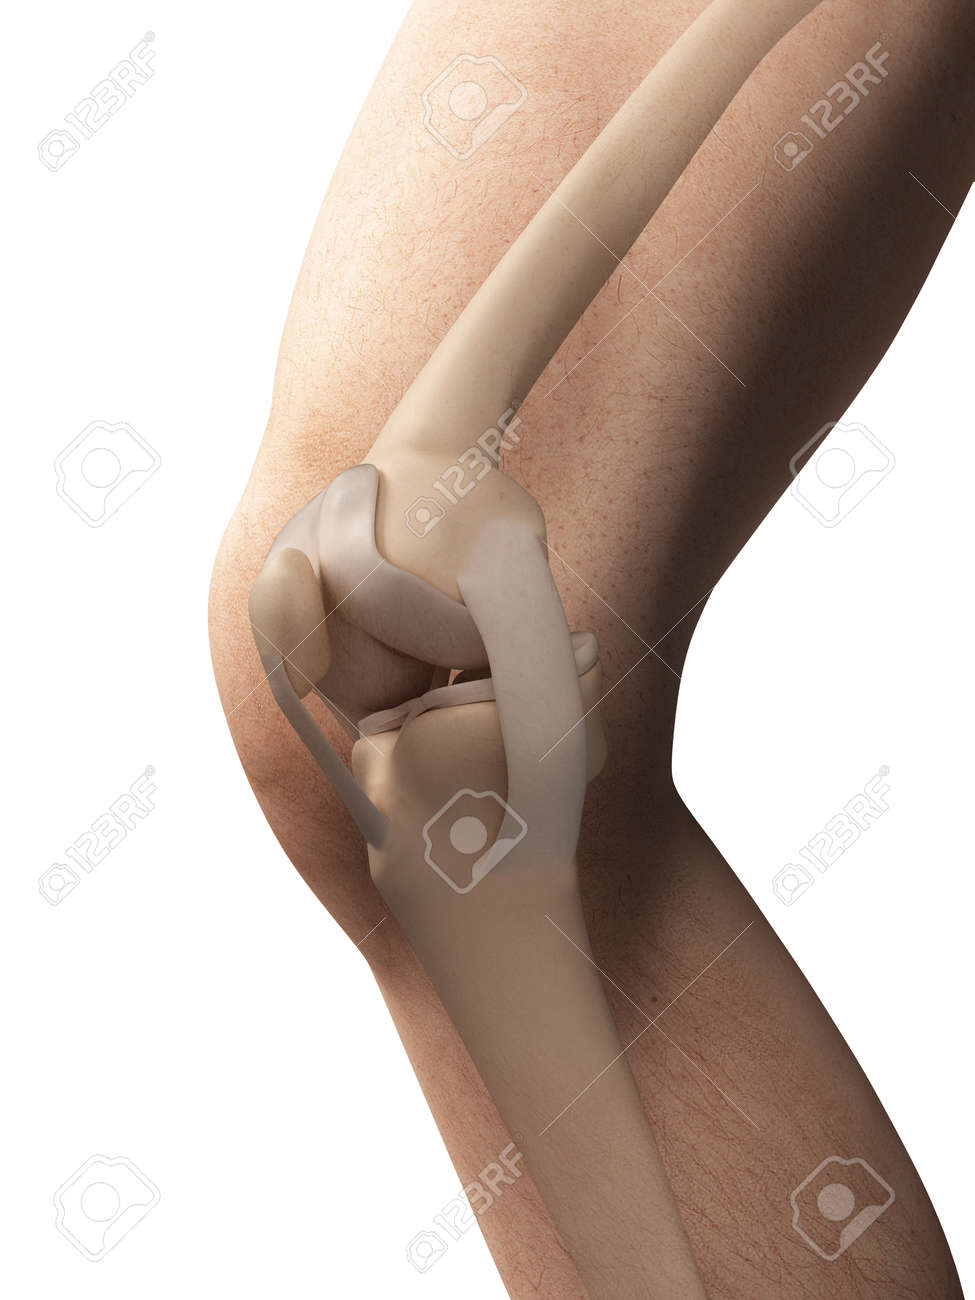 3d Rendered Illustration Anatomy Of The Knee Stock Photo Picture